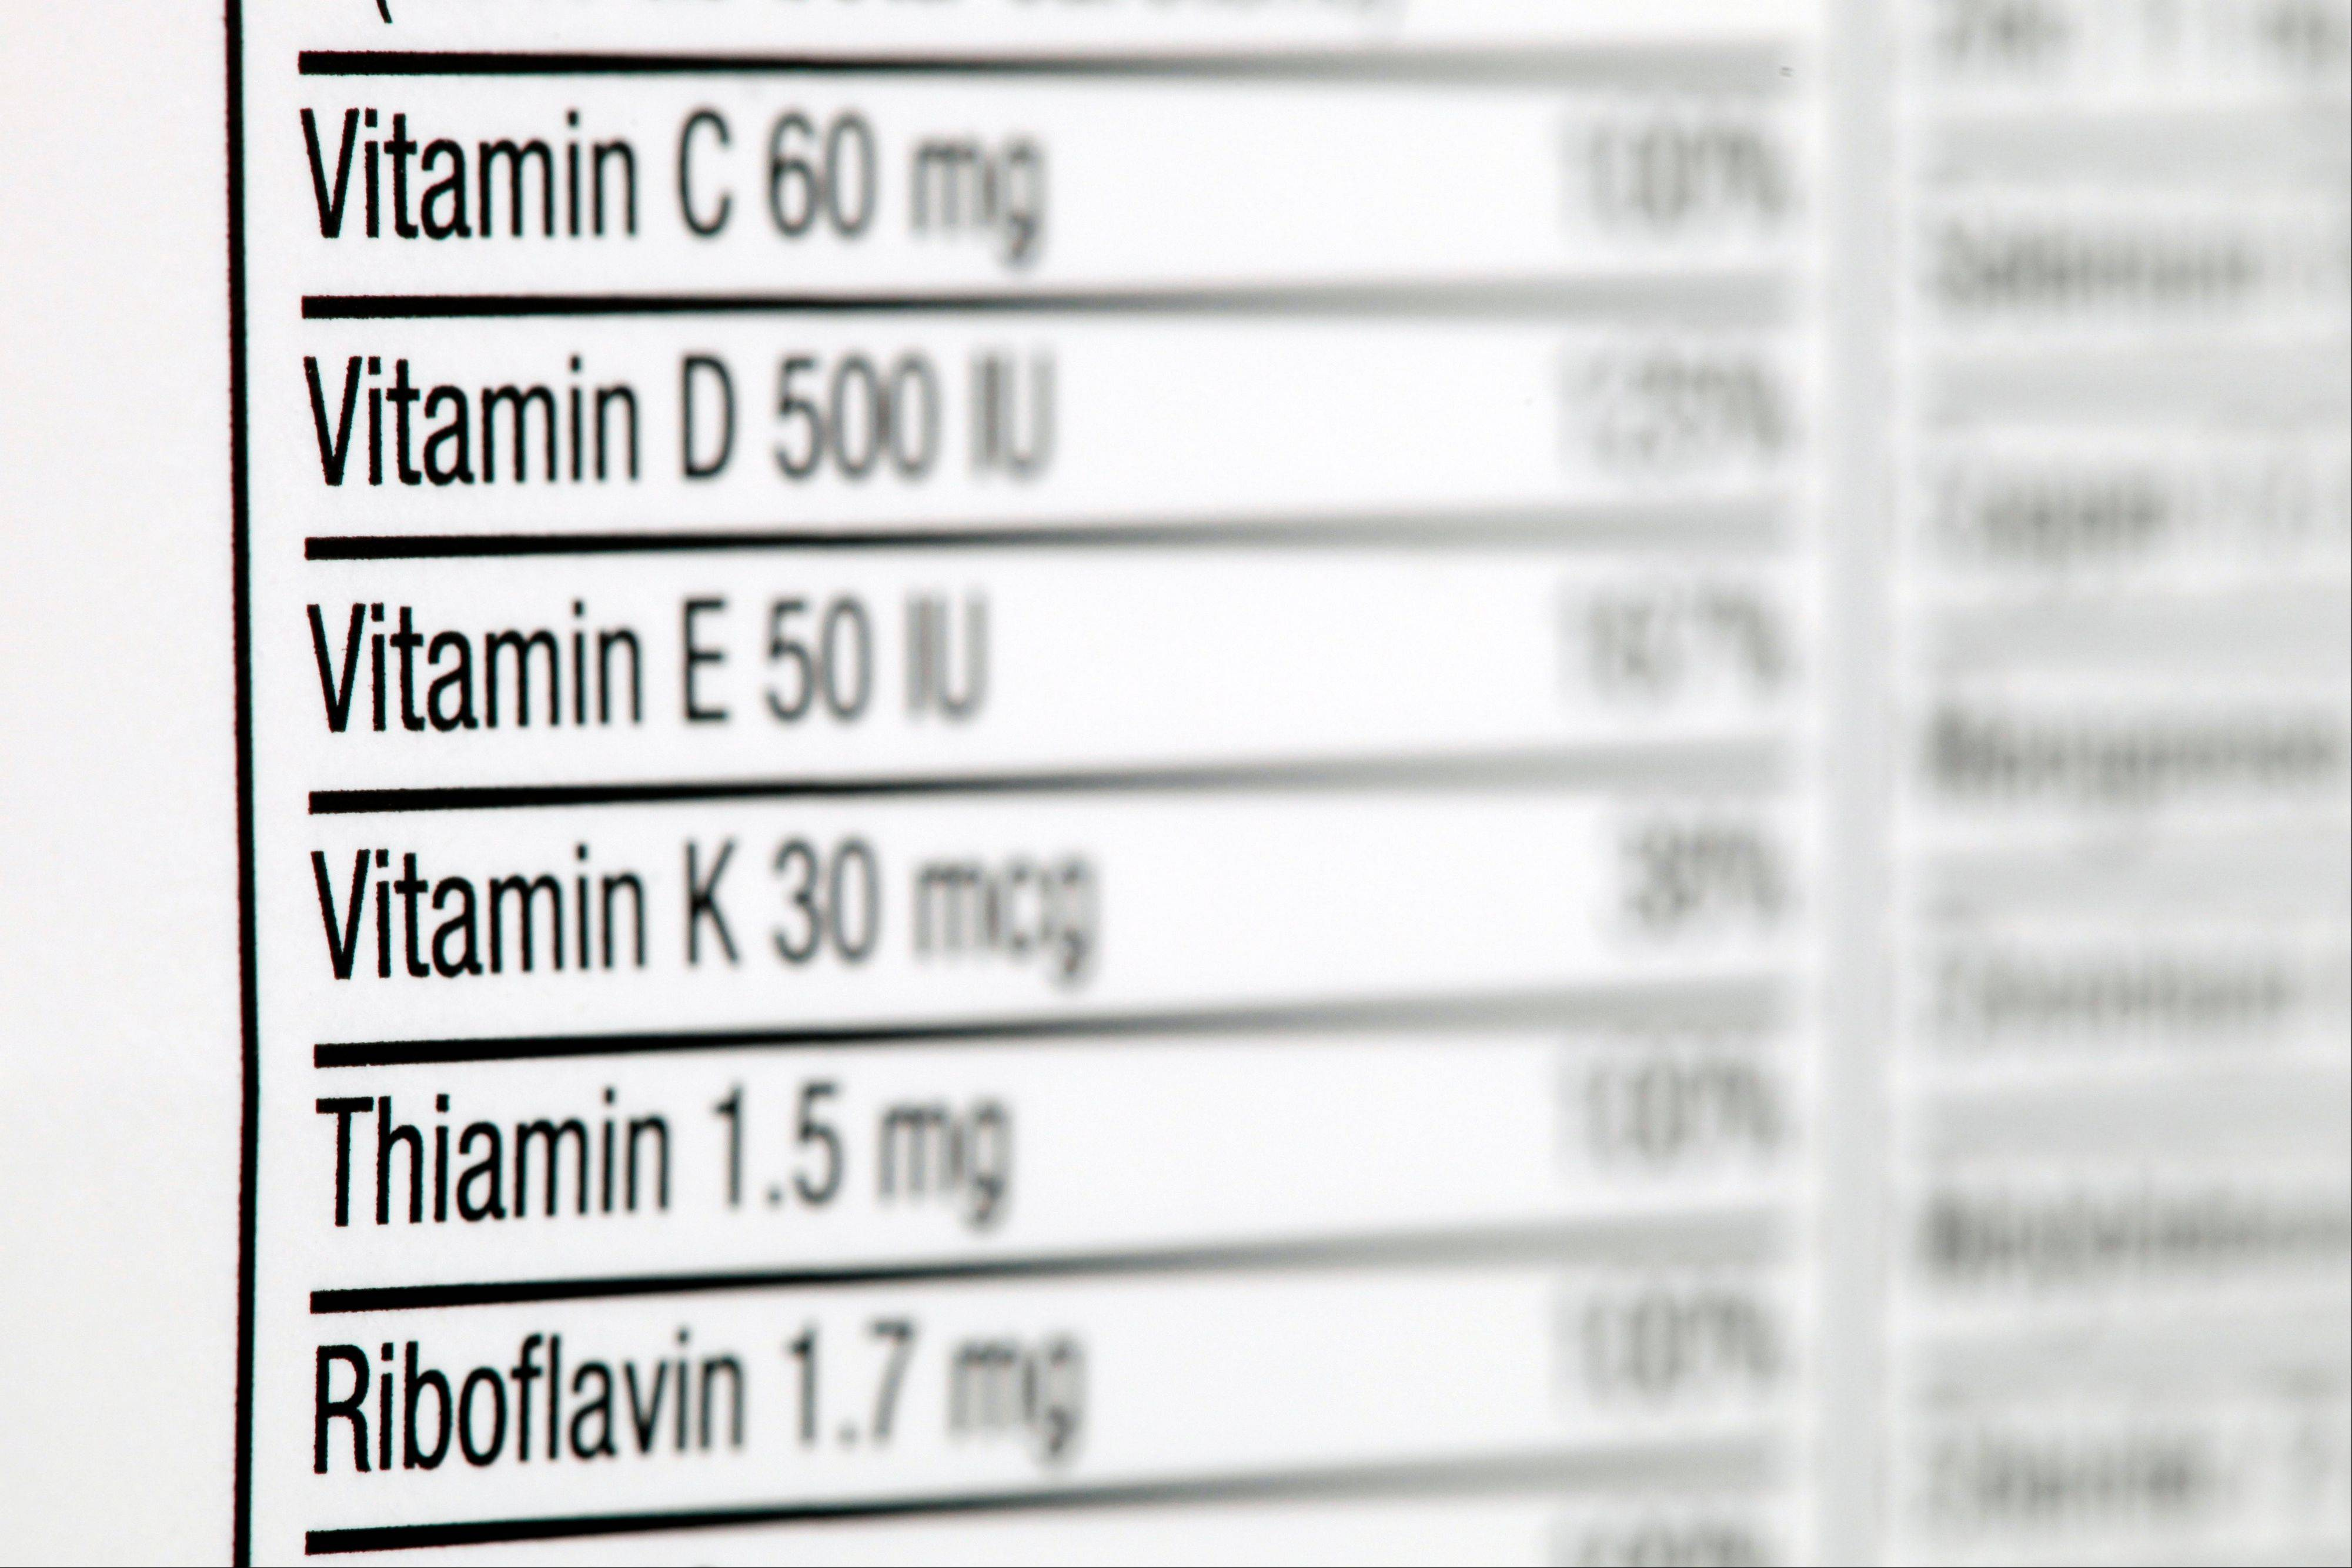 More disappointing news about multivitamins: About a third of Americans pop these pills but they don't seem to protect our aging brains, or guard against heart disease.